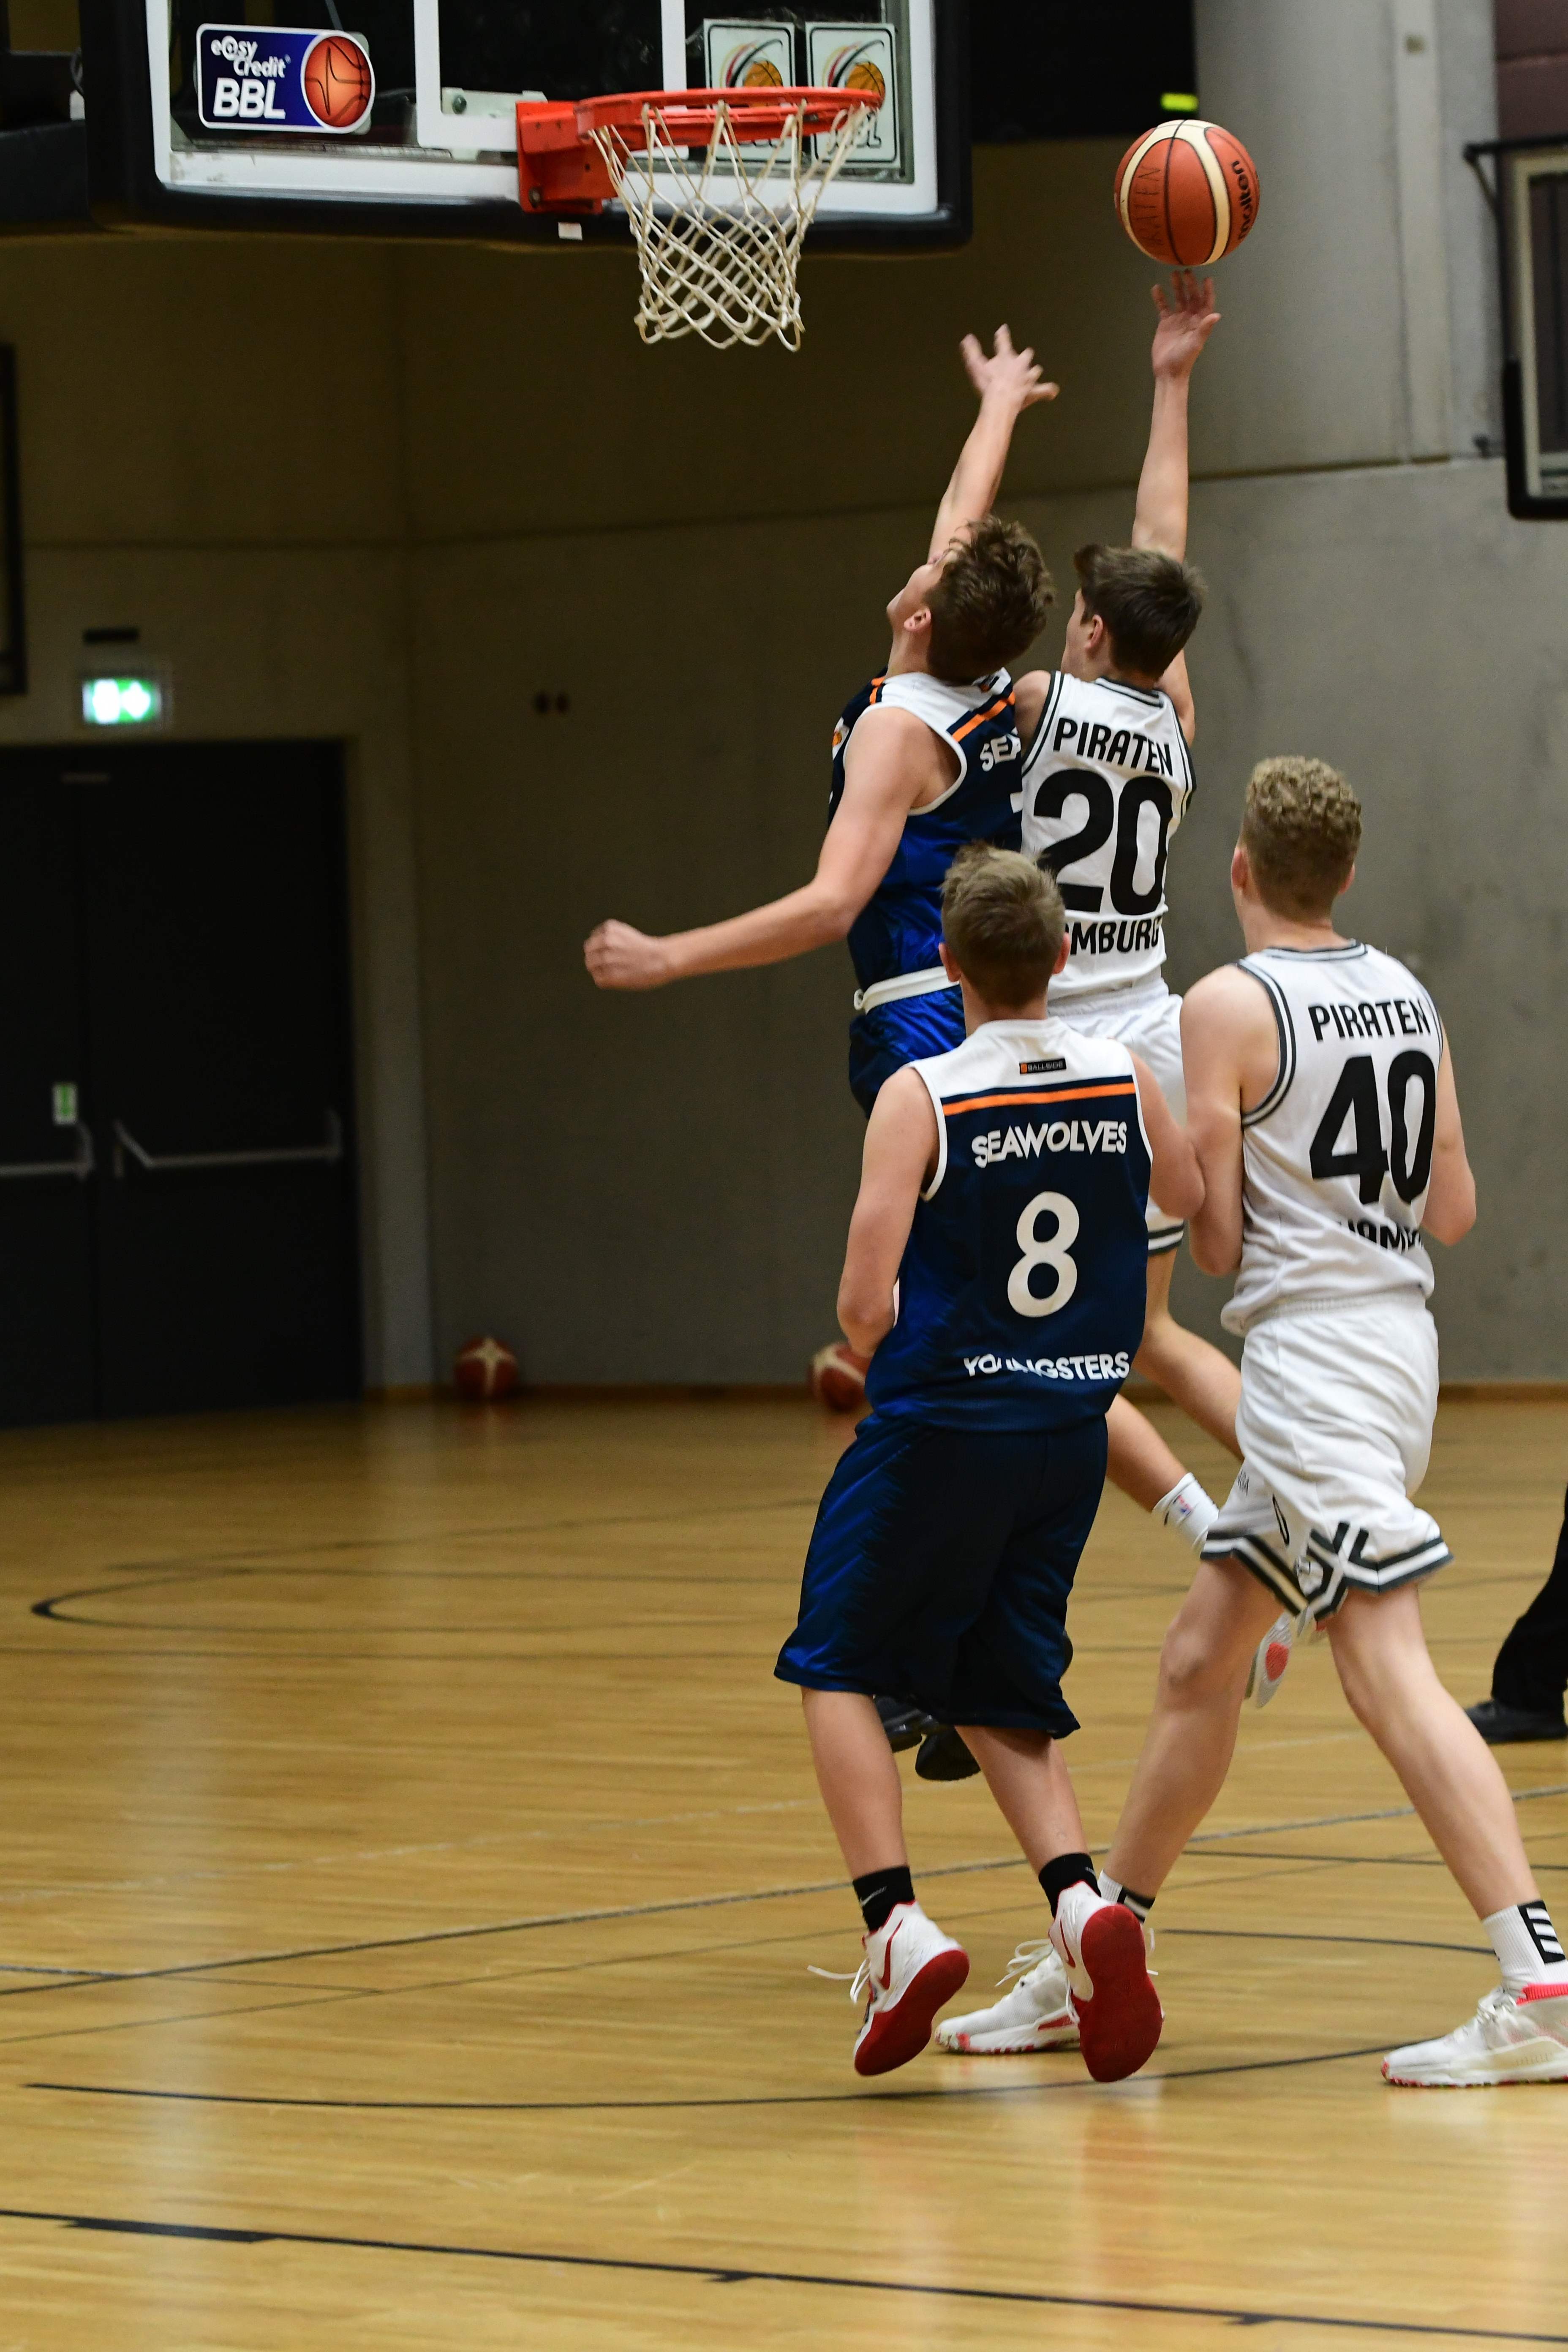 Foto-2-01.11.2019Spieltag-6-JBBL-Hamburg-Towers-gegen-Rostock-Seawolves-Youngsters